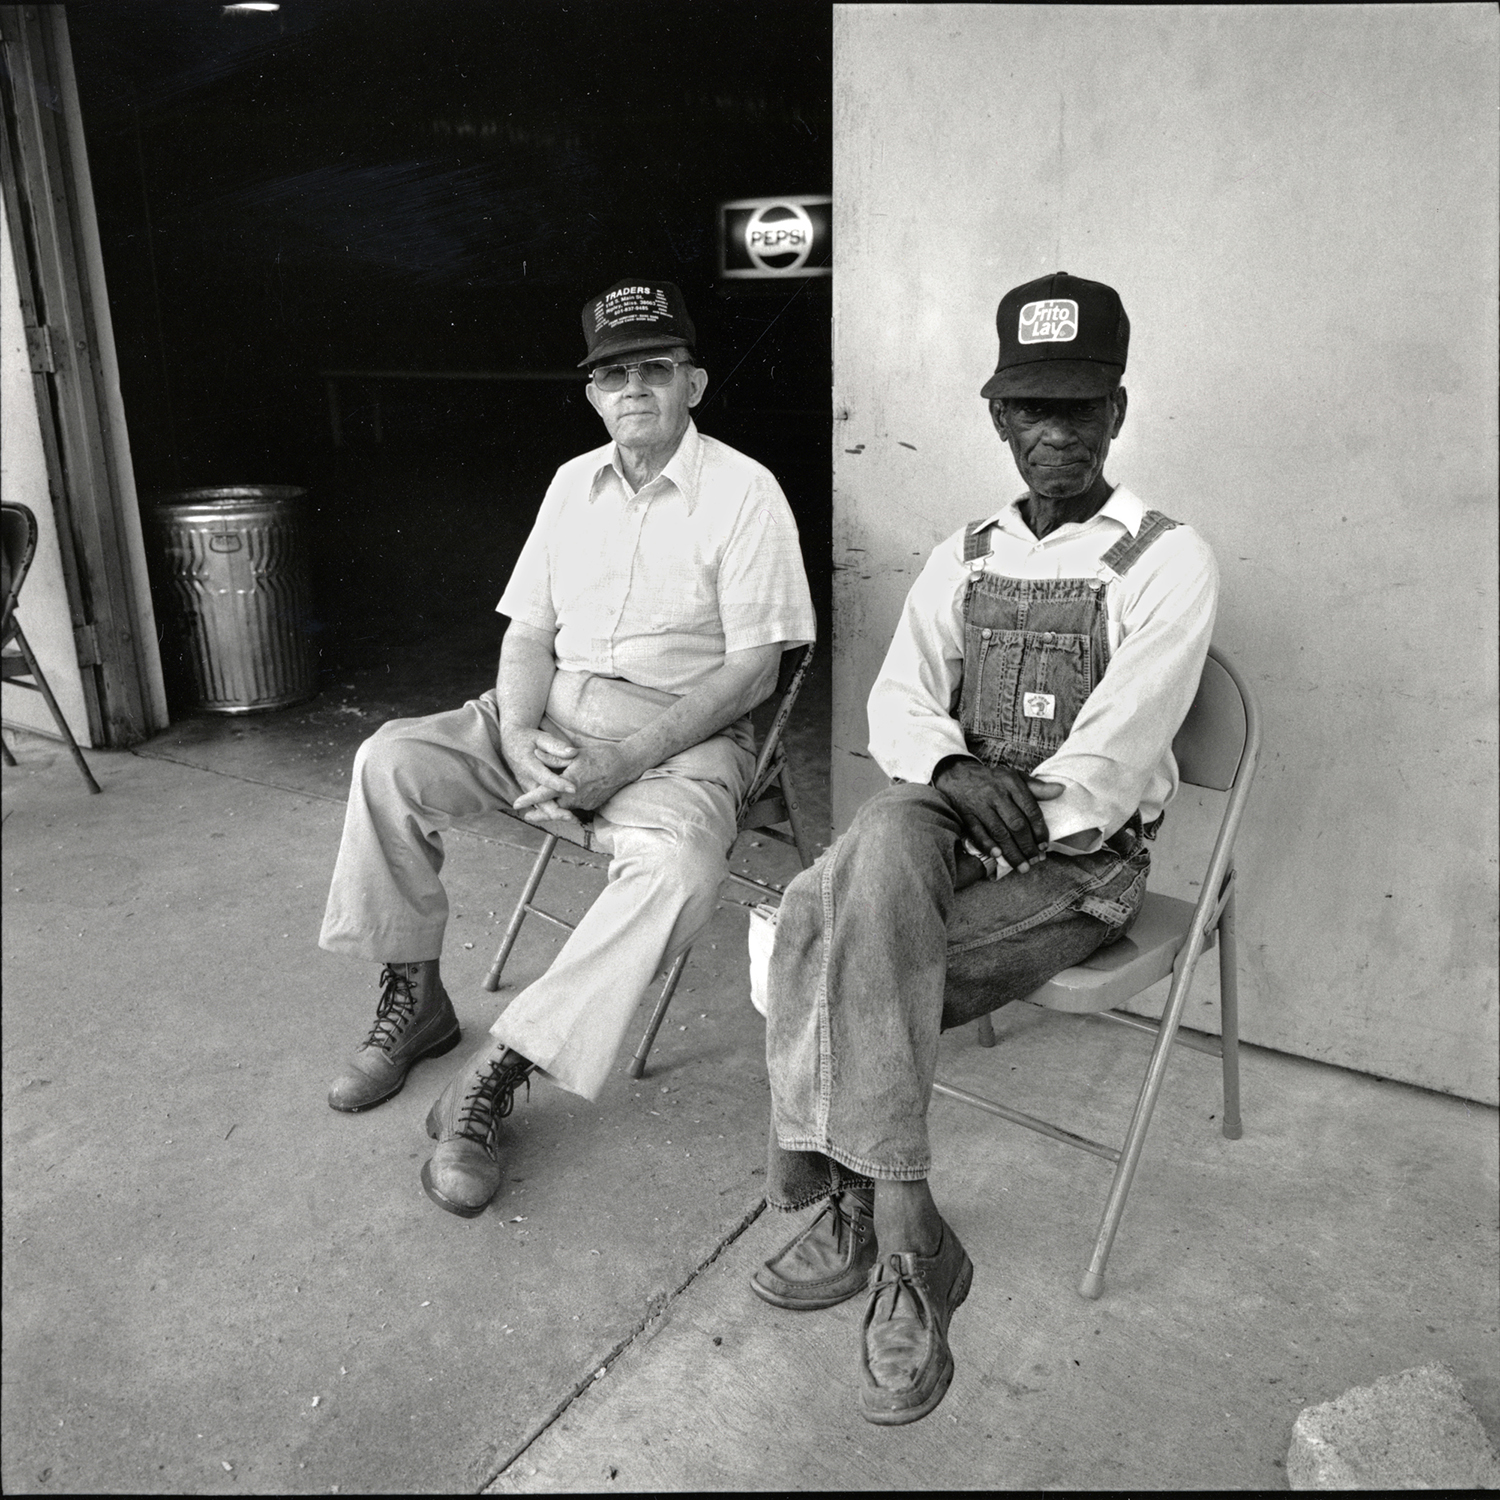 Two Men Waiting, Ripley, Mississippi, archival pigment print, 16x20, 1990